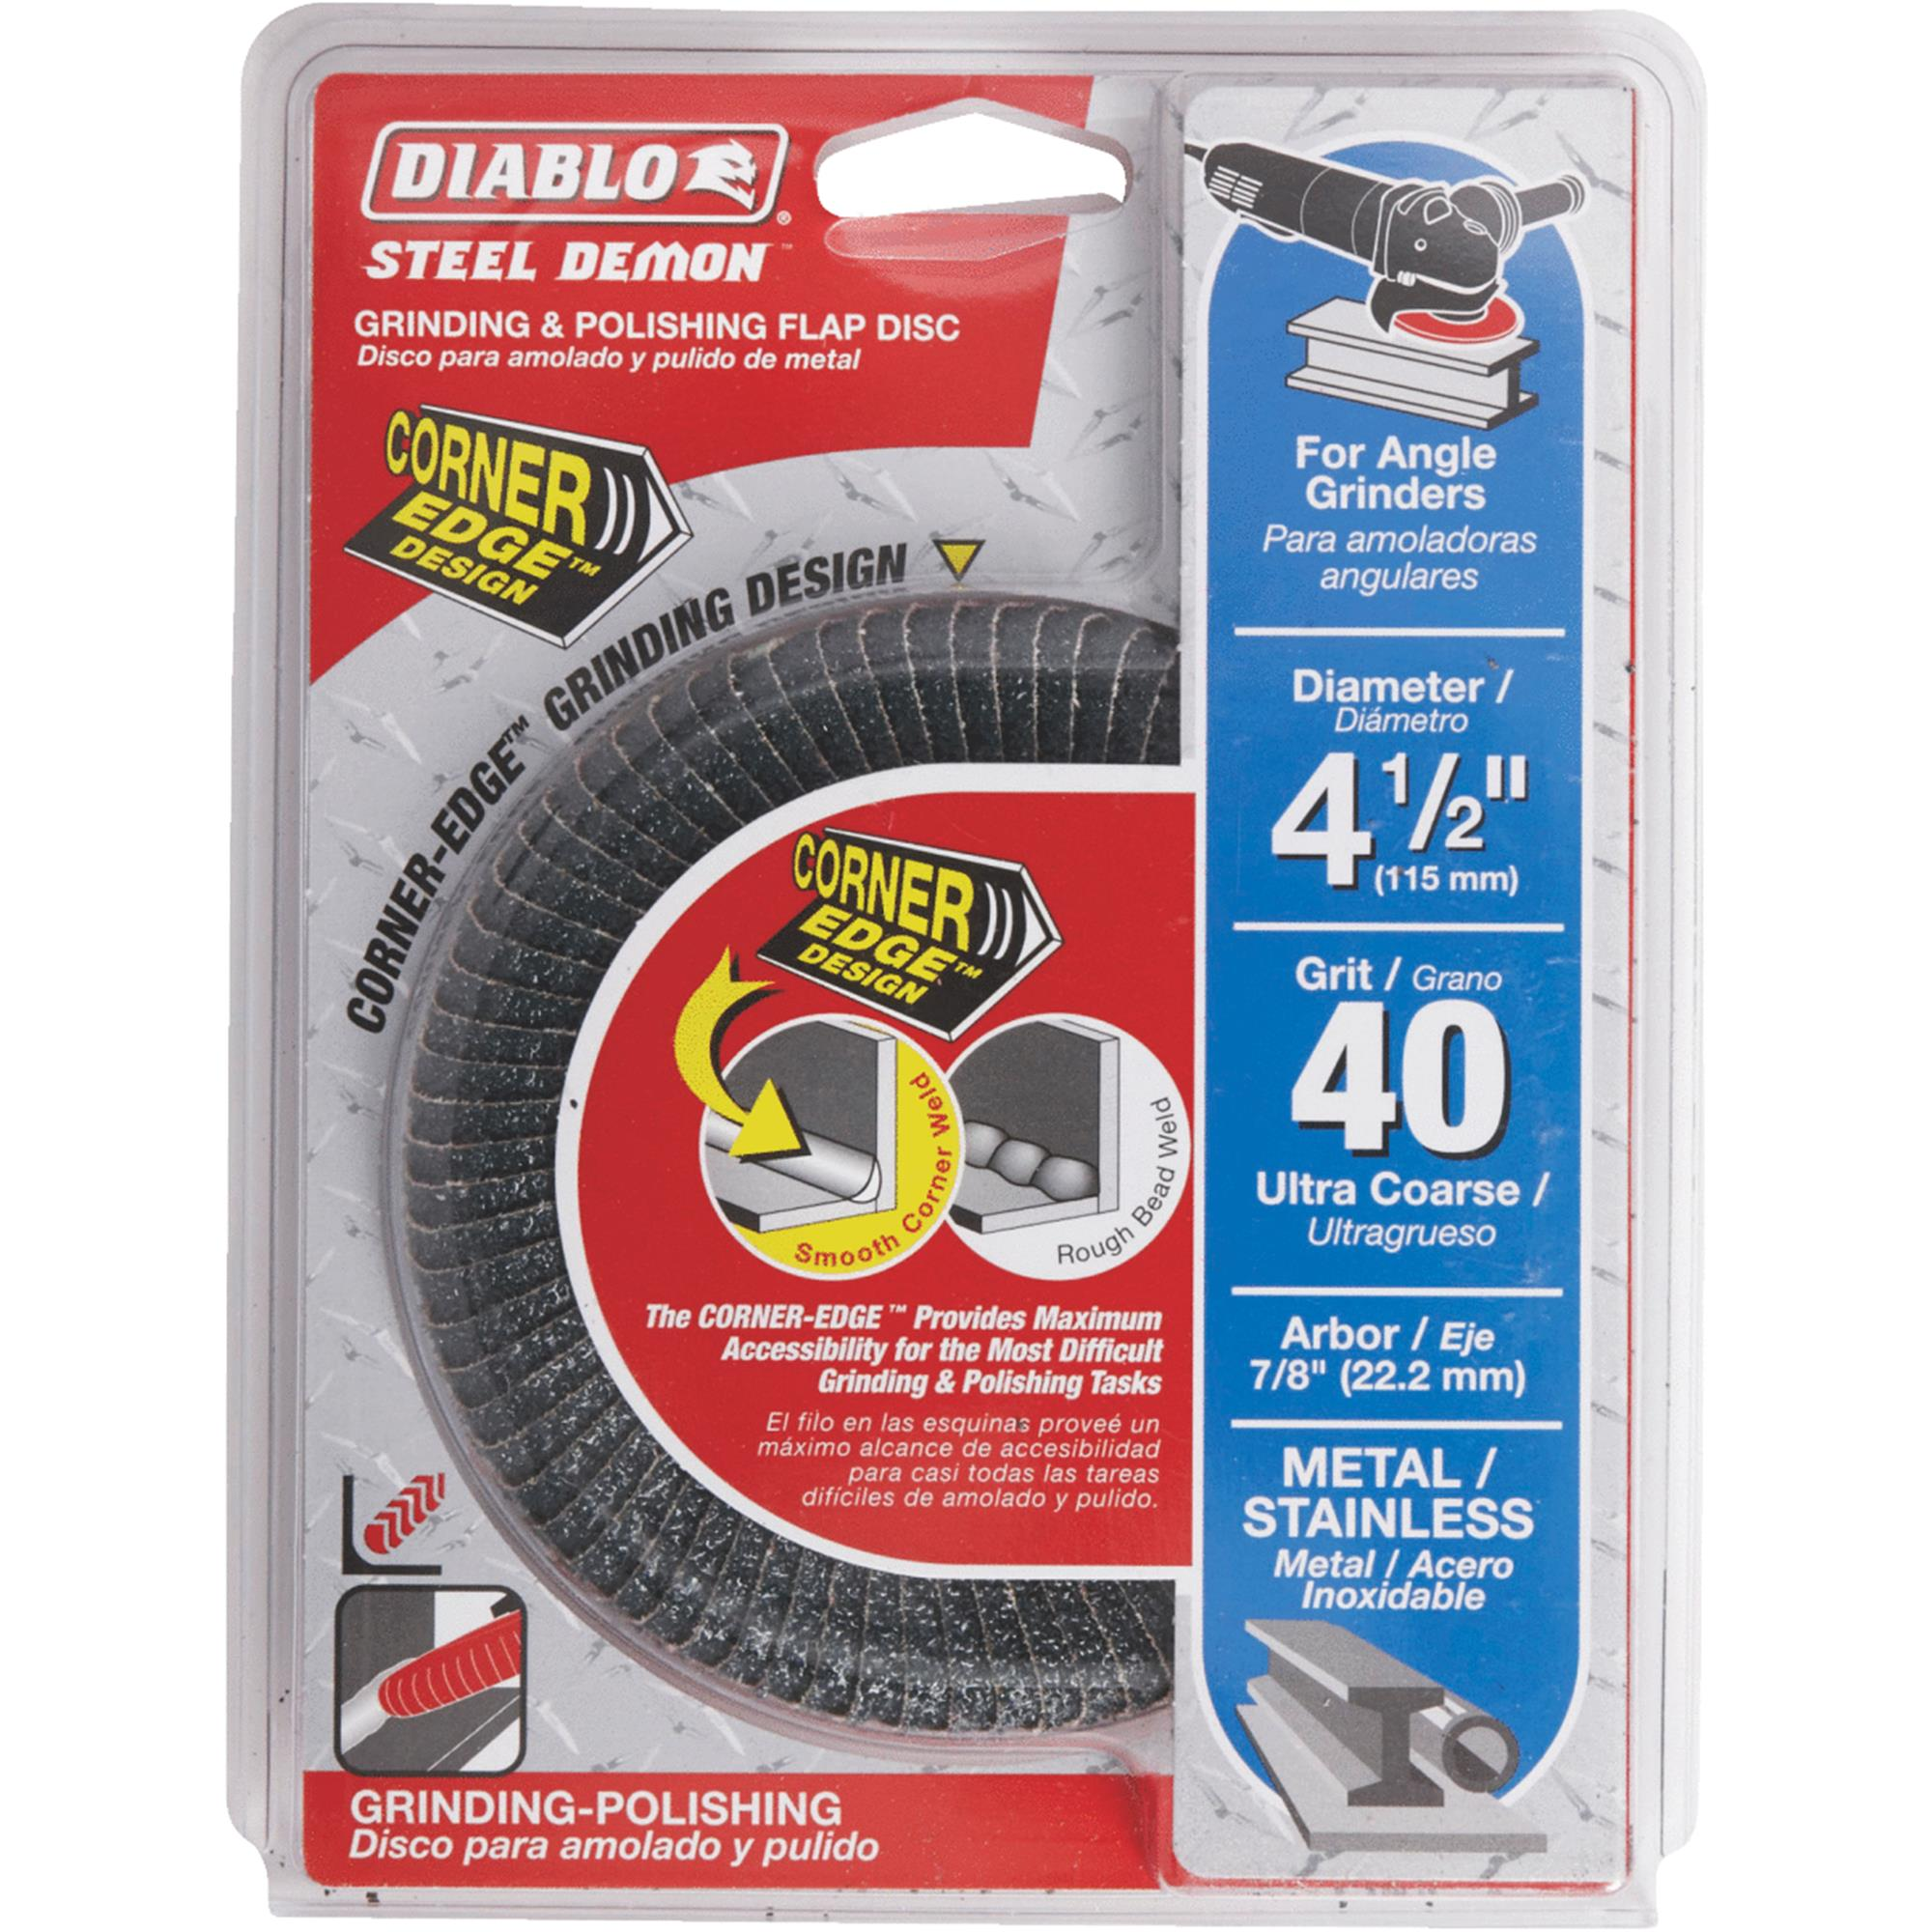 Diablo Type 29 Steel Demon Corner-Edge Angle Grinder Flap Disc